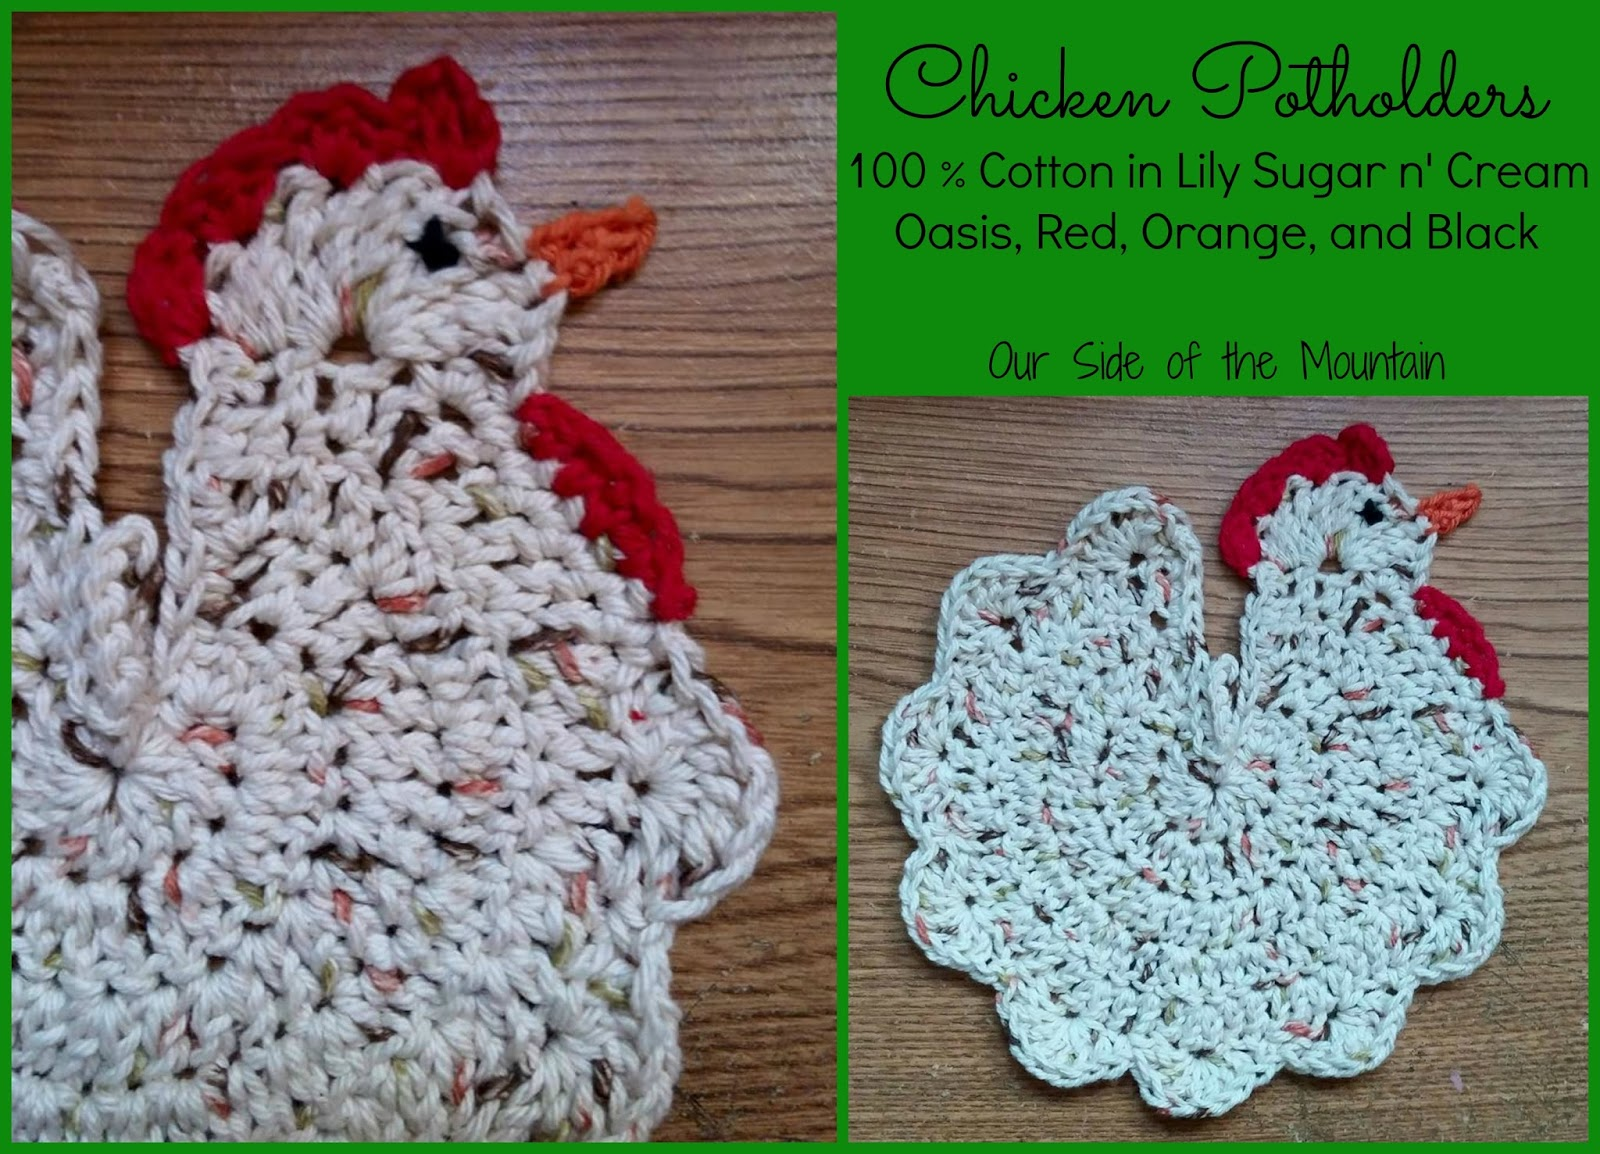 Our Side of the Mountain: Creative Crochet: Chicken Potholders